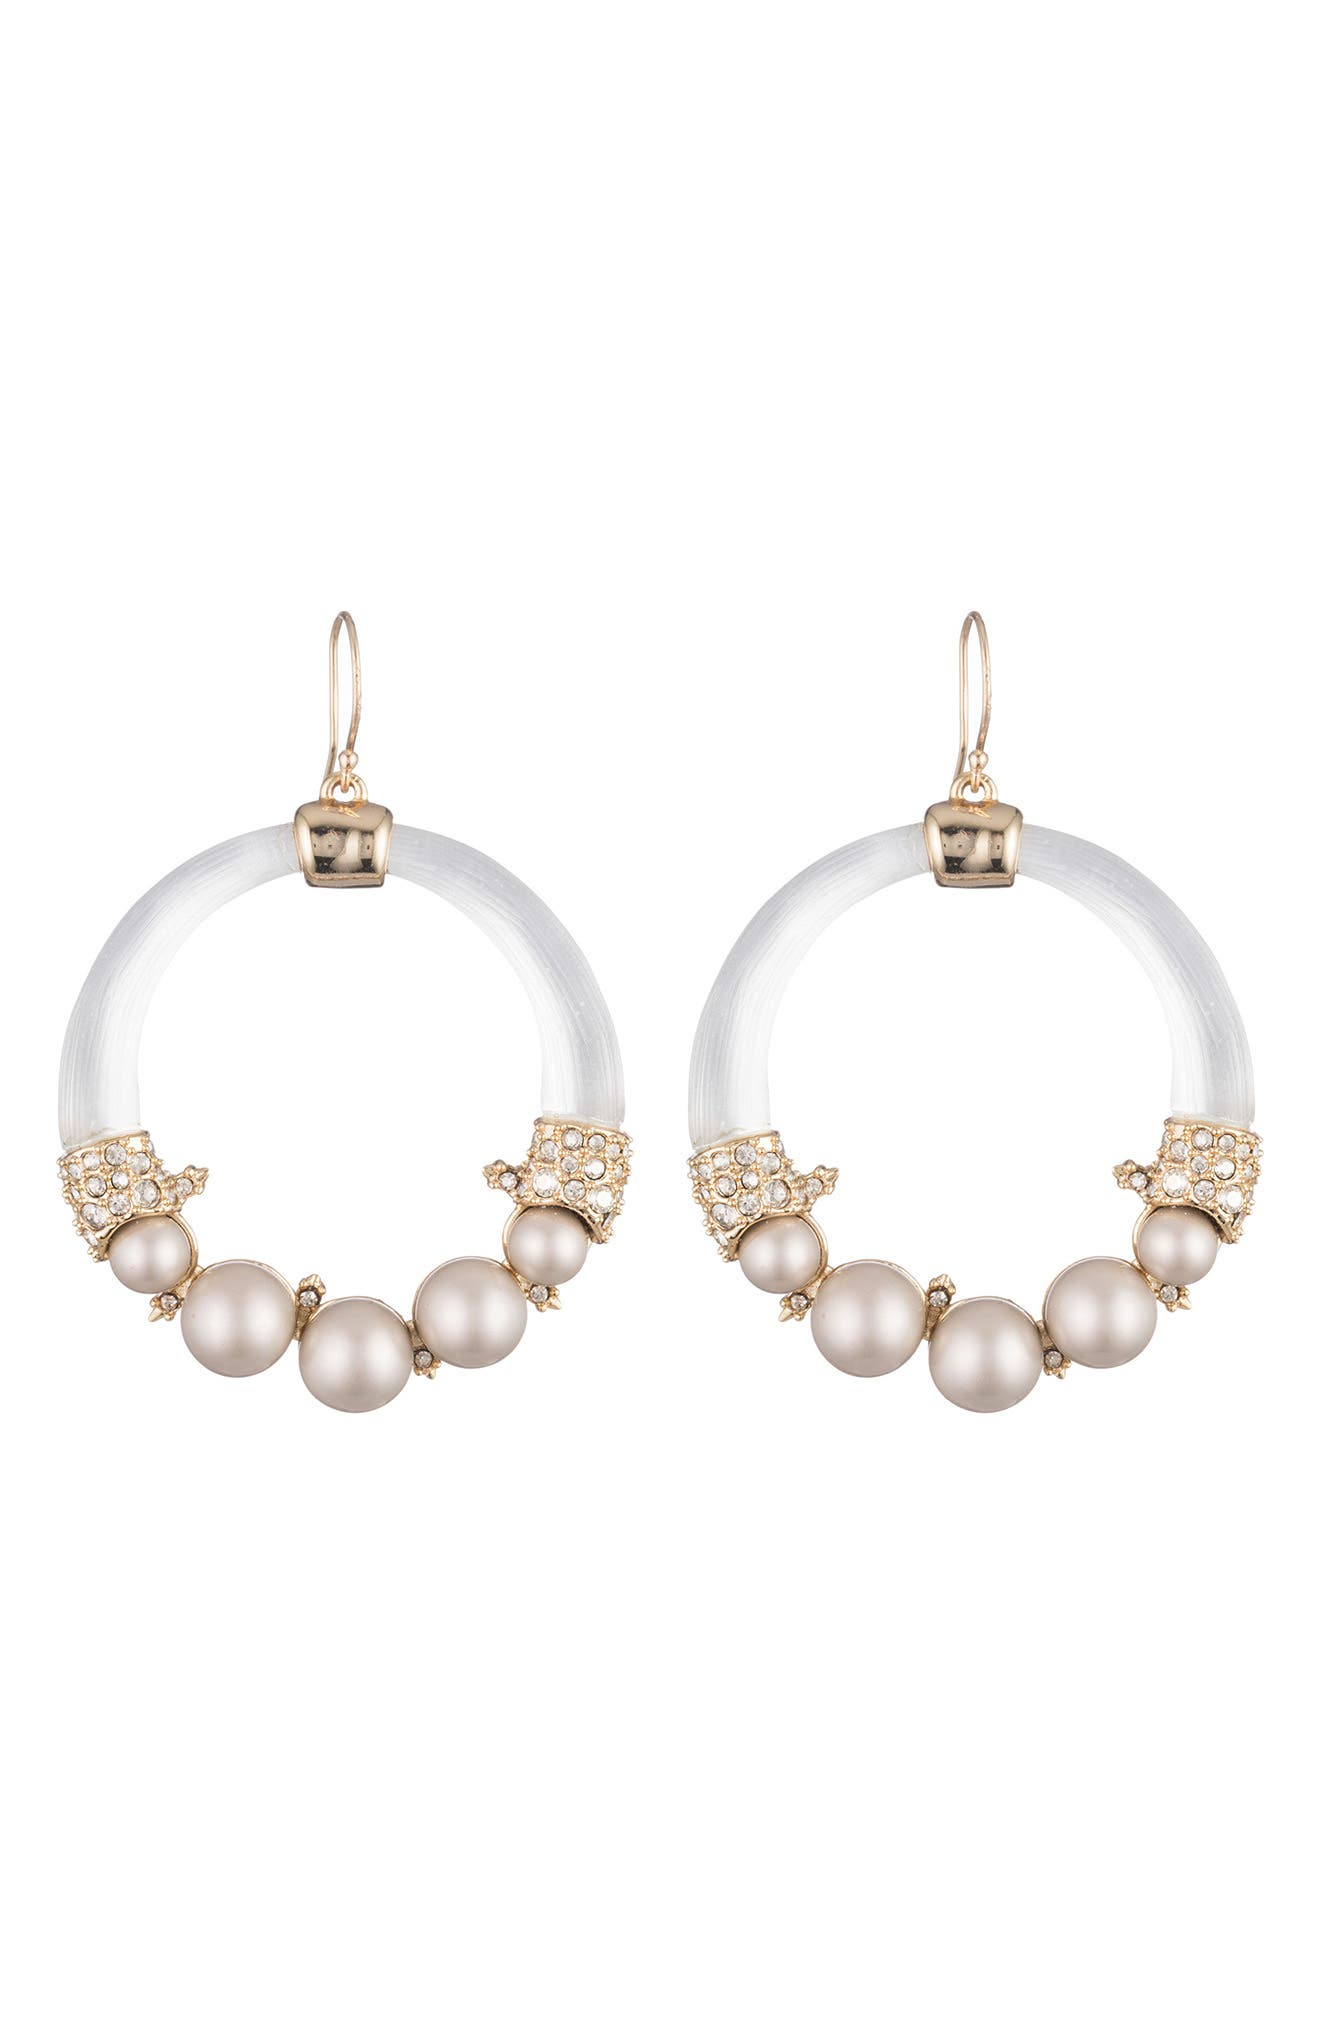 Shell Pearl Hoop Earrings,                         Main,                         color, 040